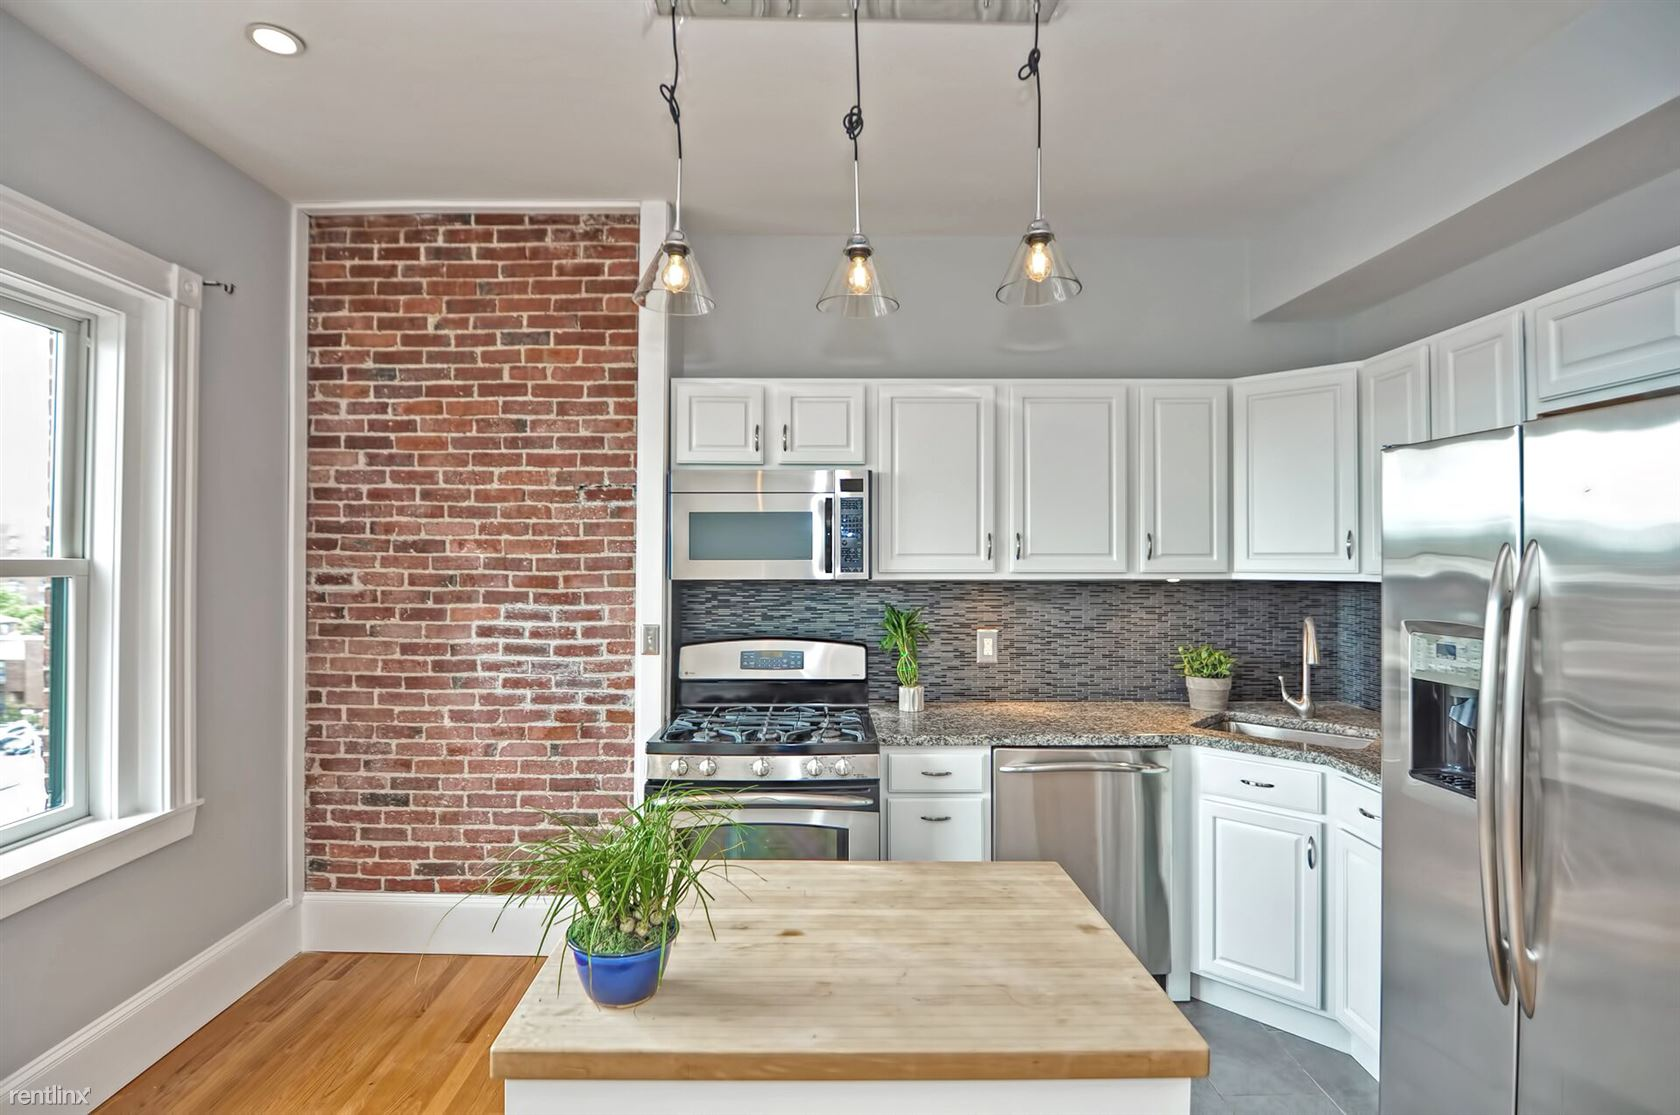 House for Rent in Boston